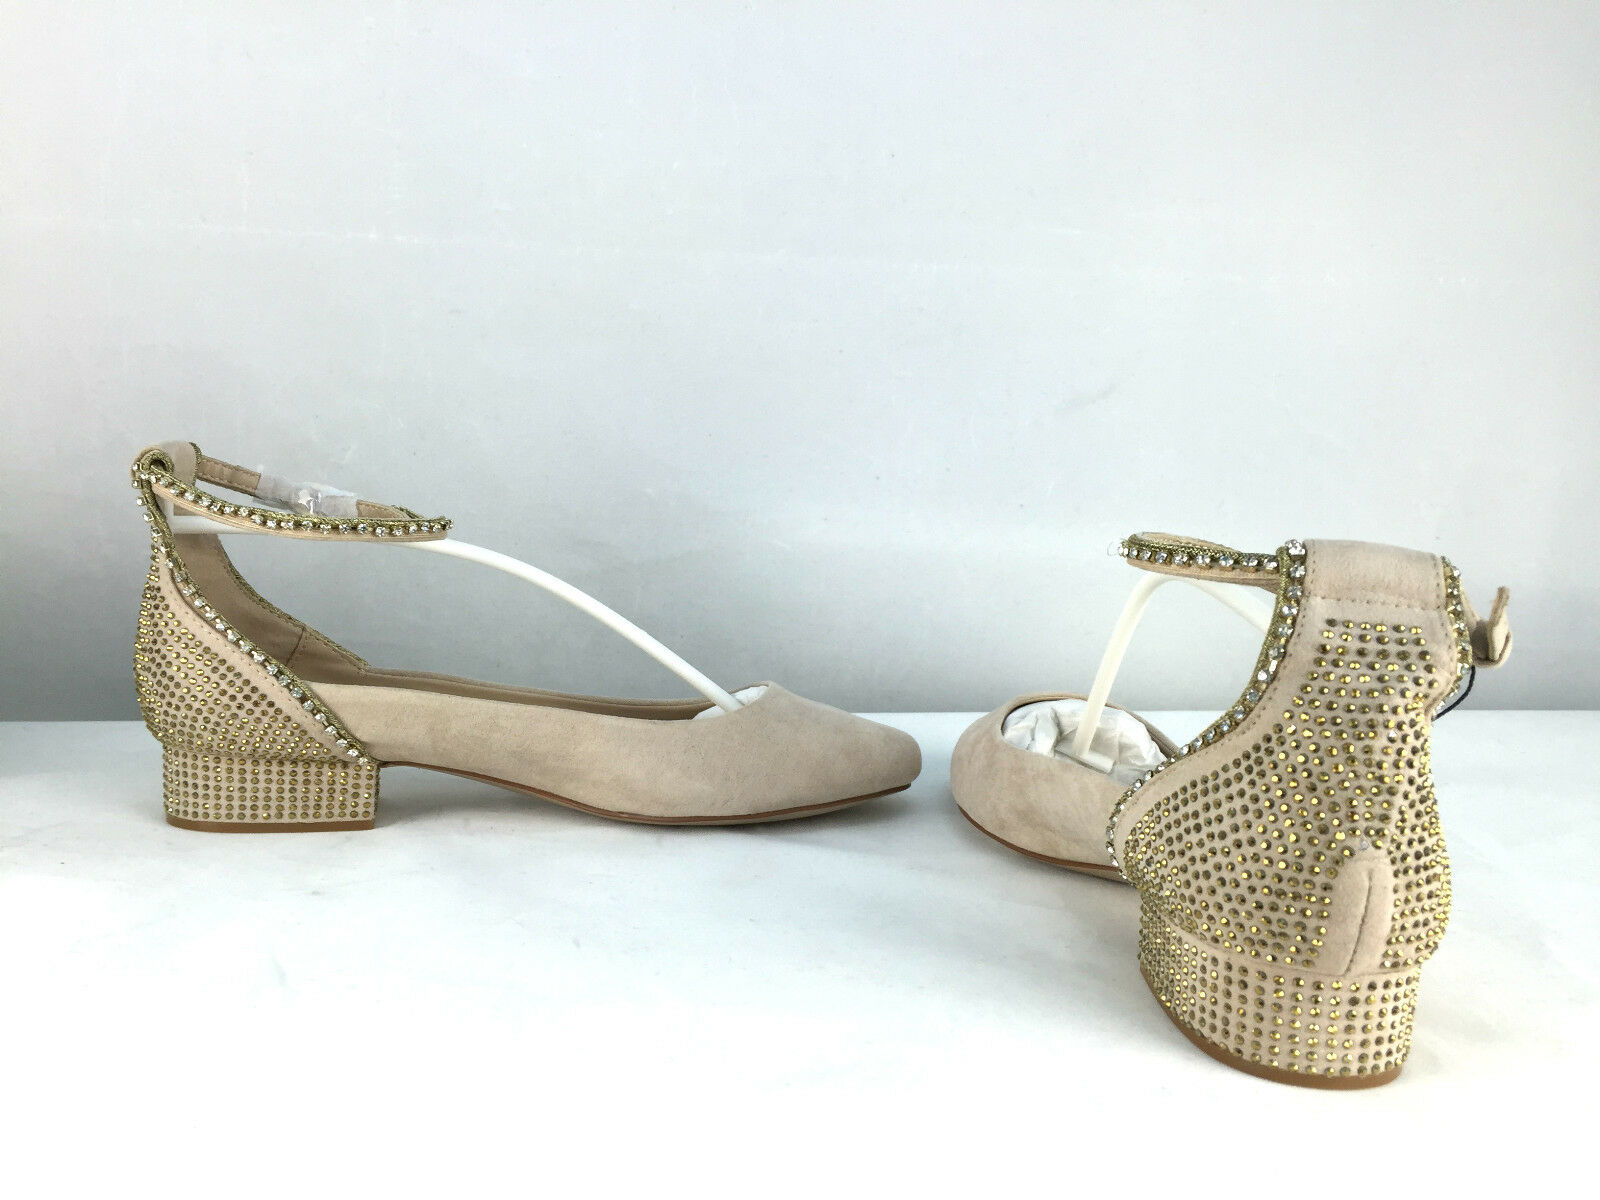 ZARA NUDE/BEIGE NUDE/BEIGE NUDE/BEIGE BALLERINA FLATS WITH CRYSTALS Schuhe SIZE UK7/EUR40/US9 329776